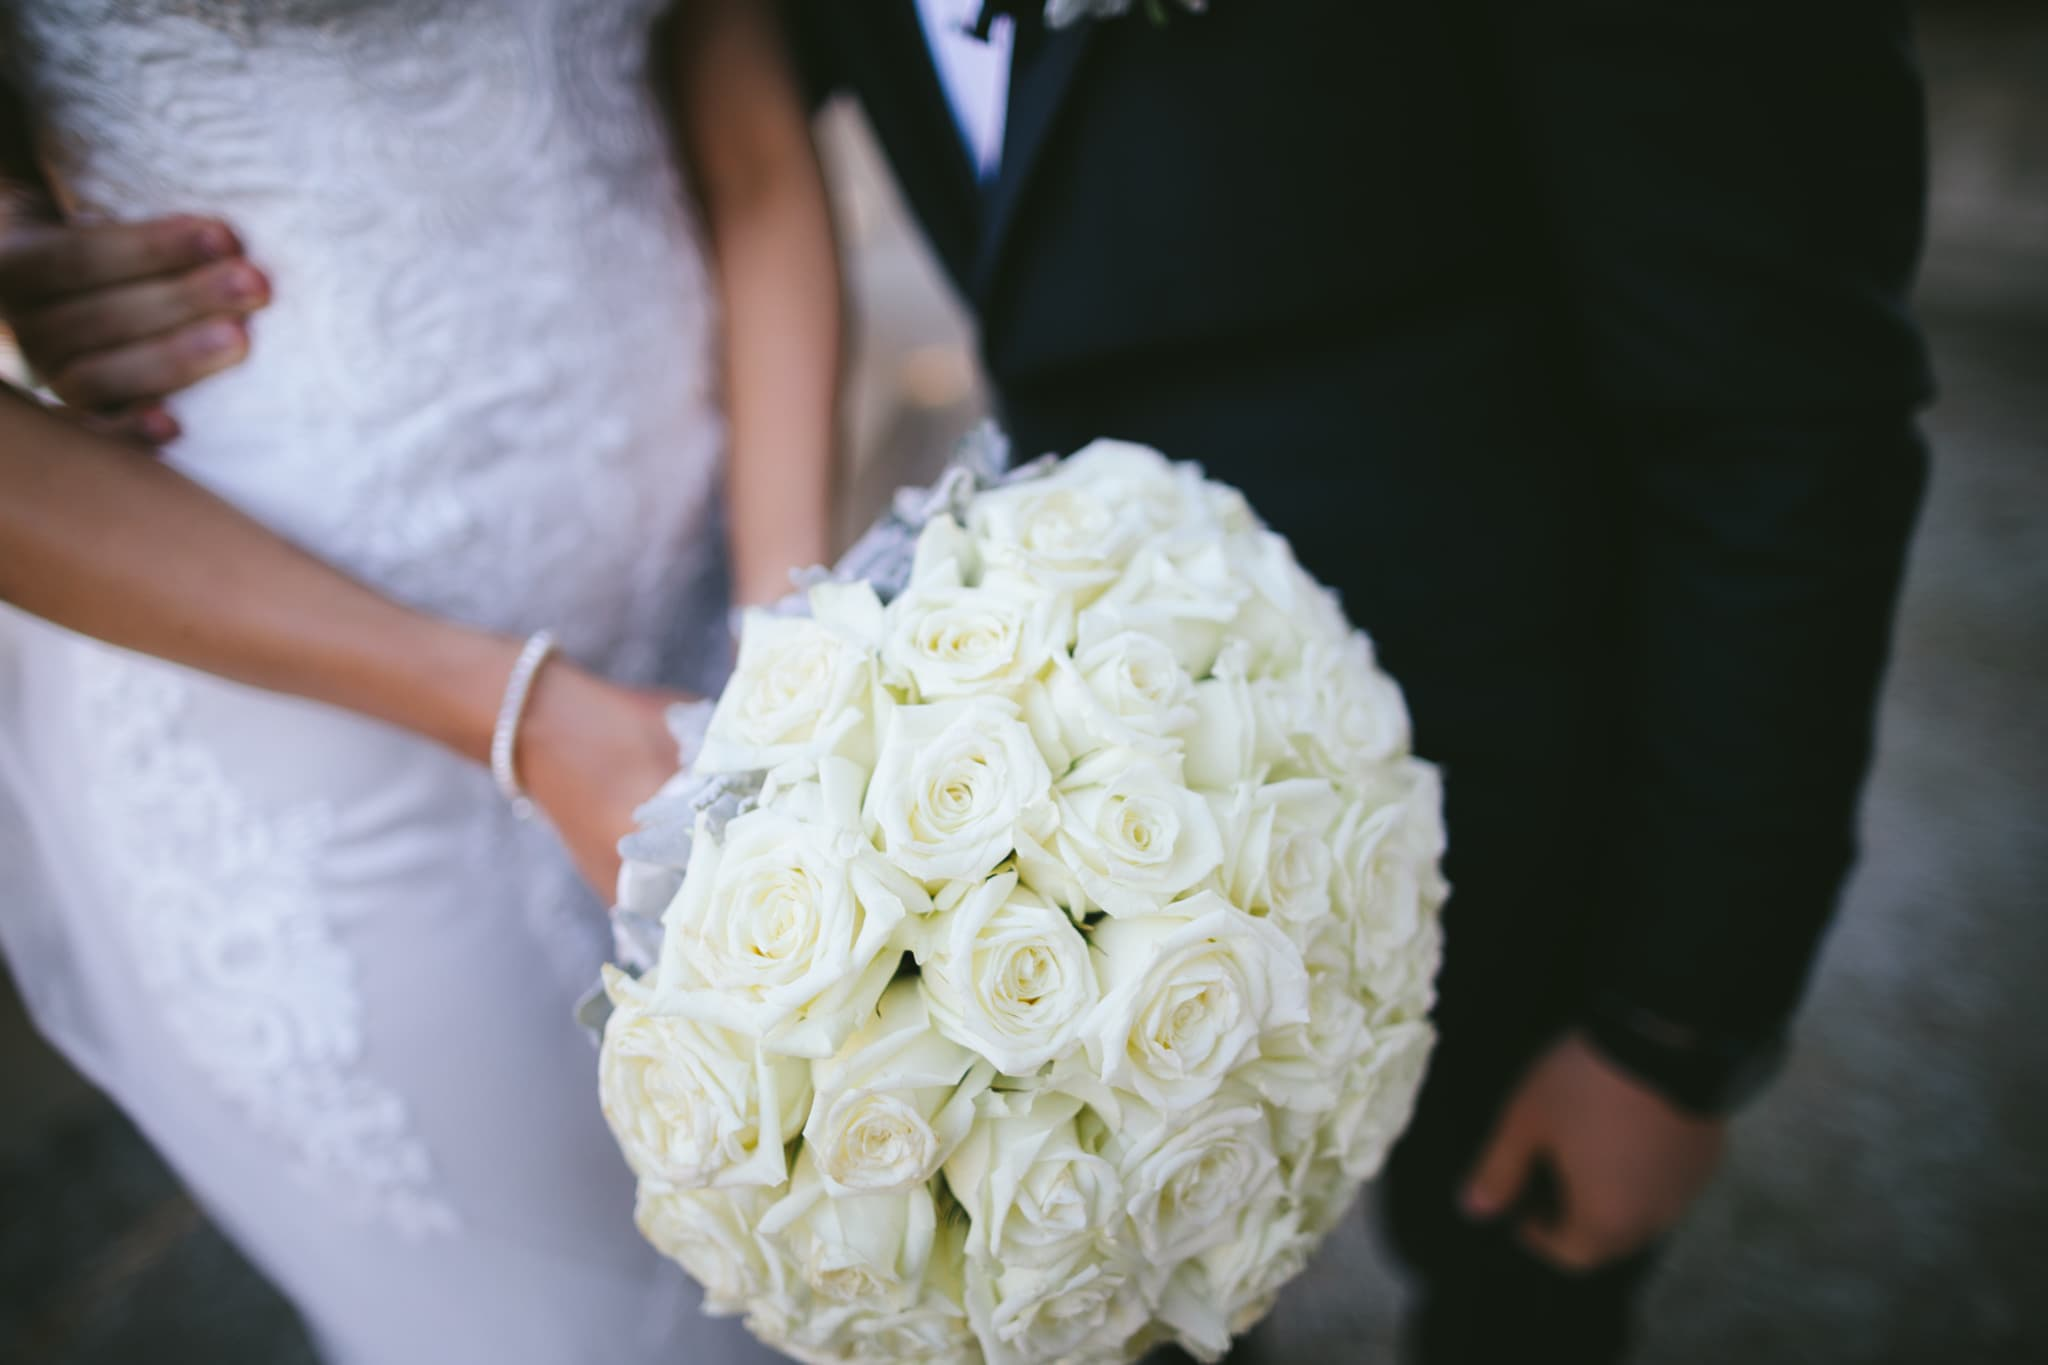 white flowers (roses) at wedding